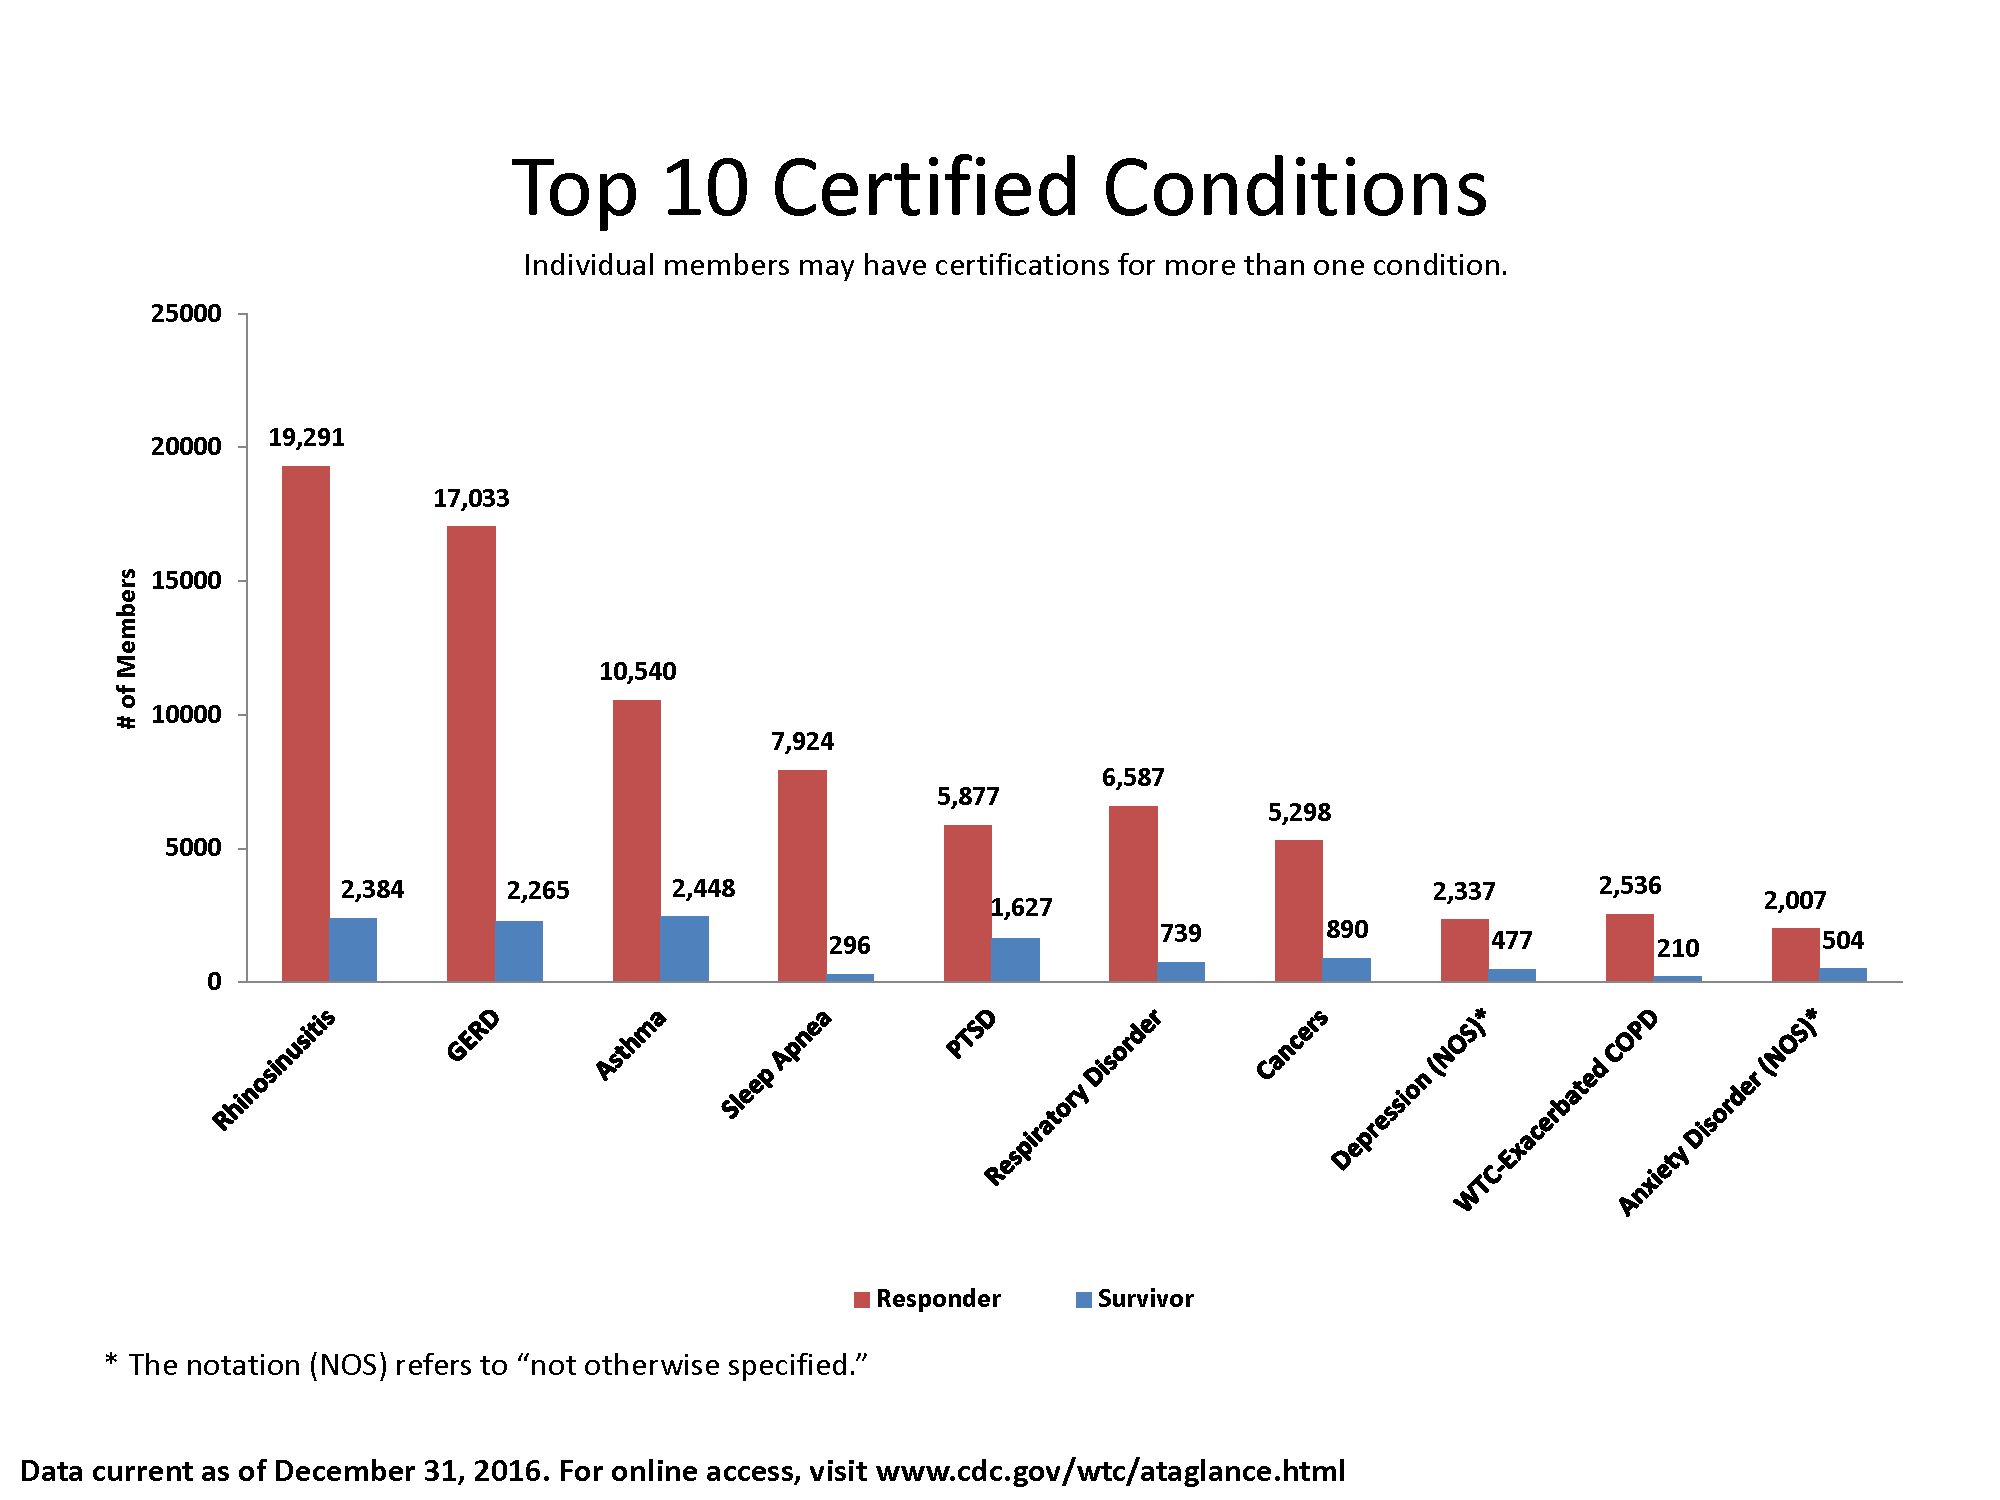 Bar chart showing the top 10 certified conditions: